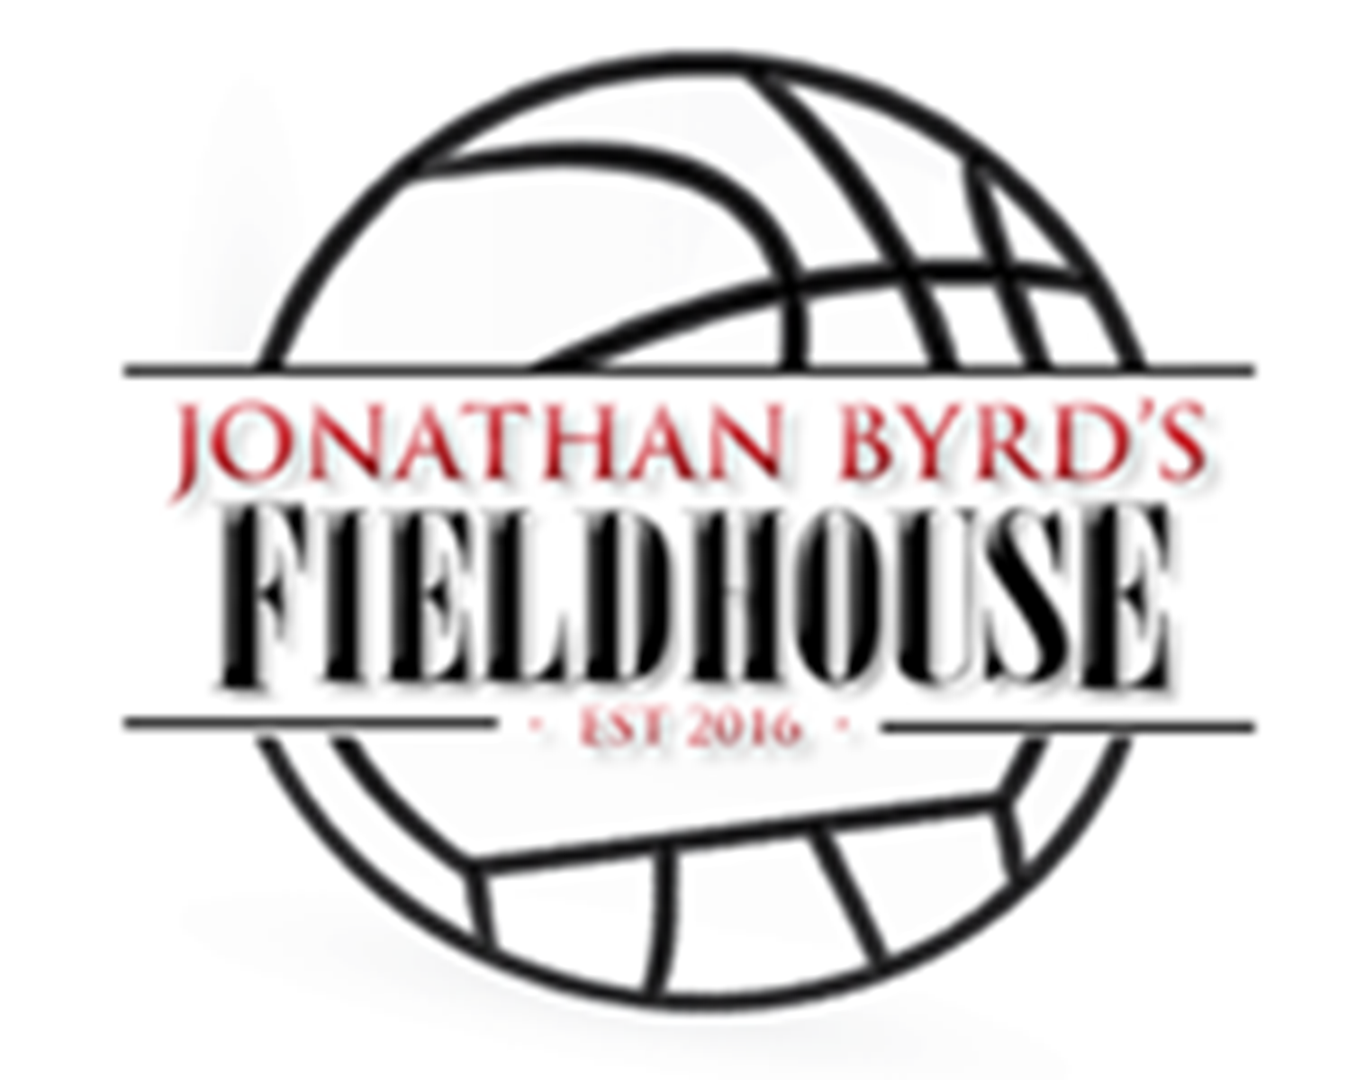 Nike Elite Youth Basketball League Eybl Event To Be Held At Jonathan Byrds Fieldhouse April 22 24 2016 additionally Career Training in addition 59109813834812016 in addition Case Study Stage 2 Technology Solution Proposal besides 367043438352469651. on college planning tips